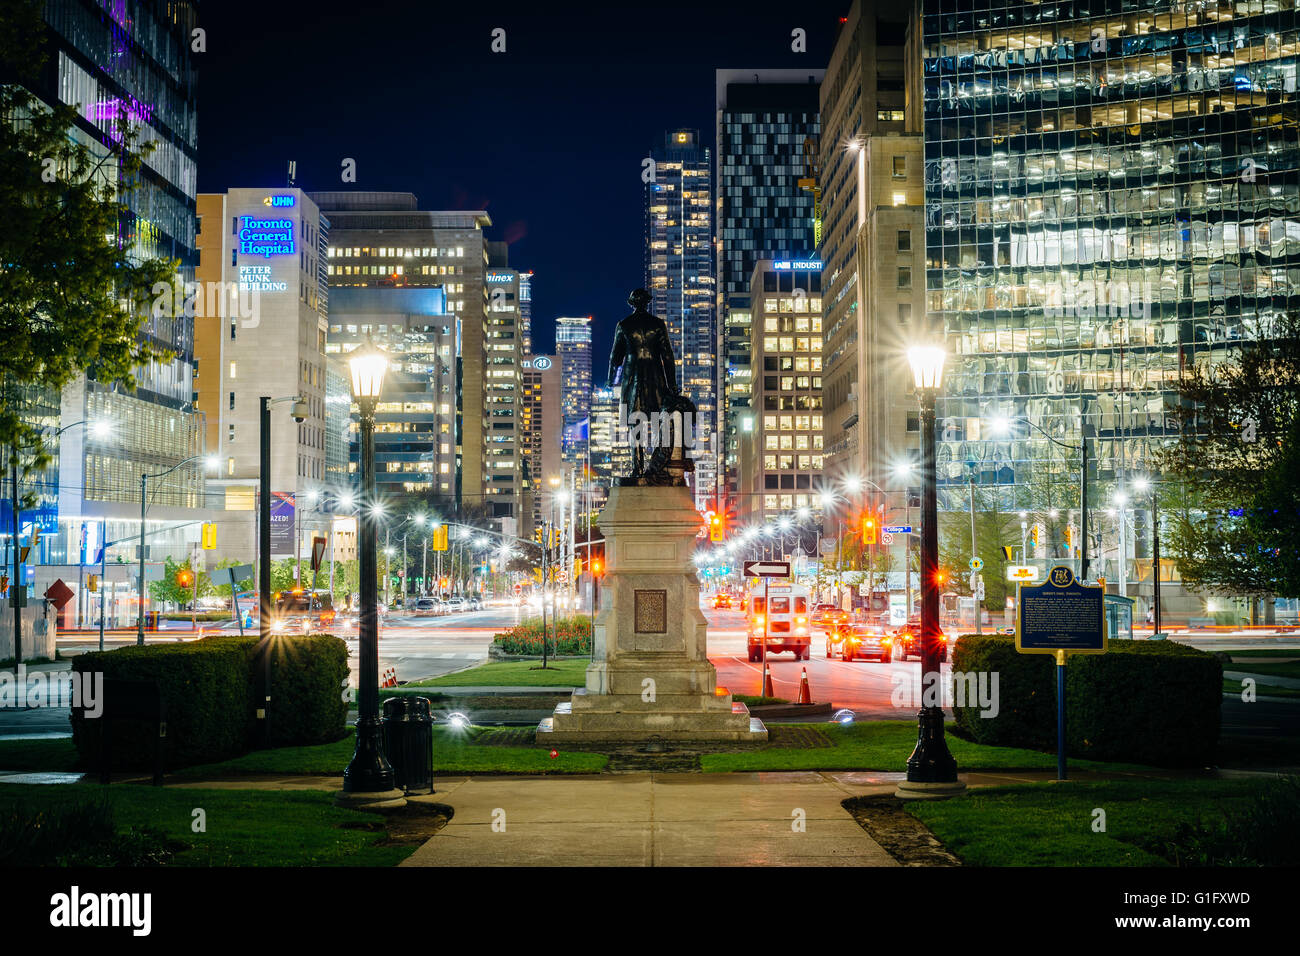 Statue and walkway at Queen's Park, and buildings on University Avenue at night, in Toronto, Ontario. - Stock Image